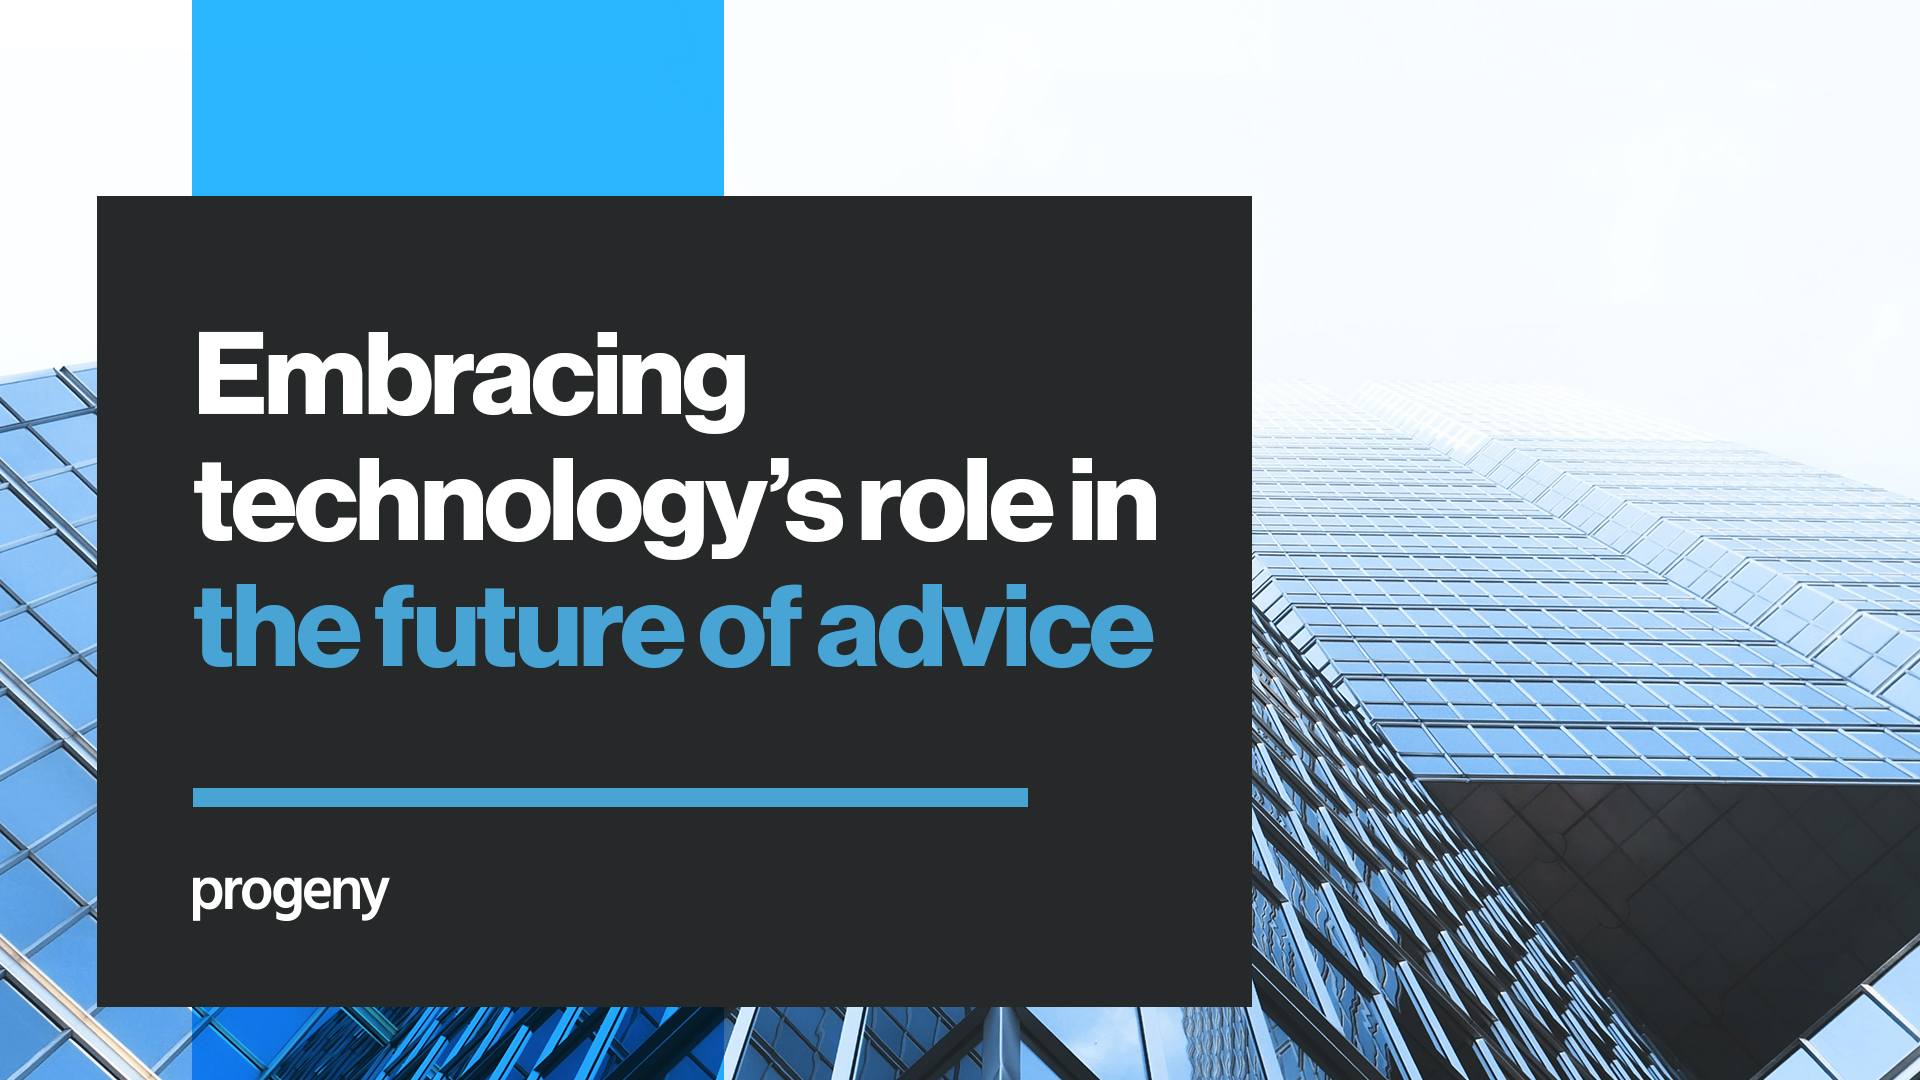 technology's role in the future of advice